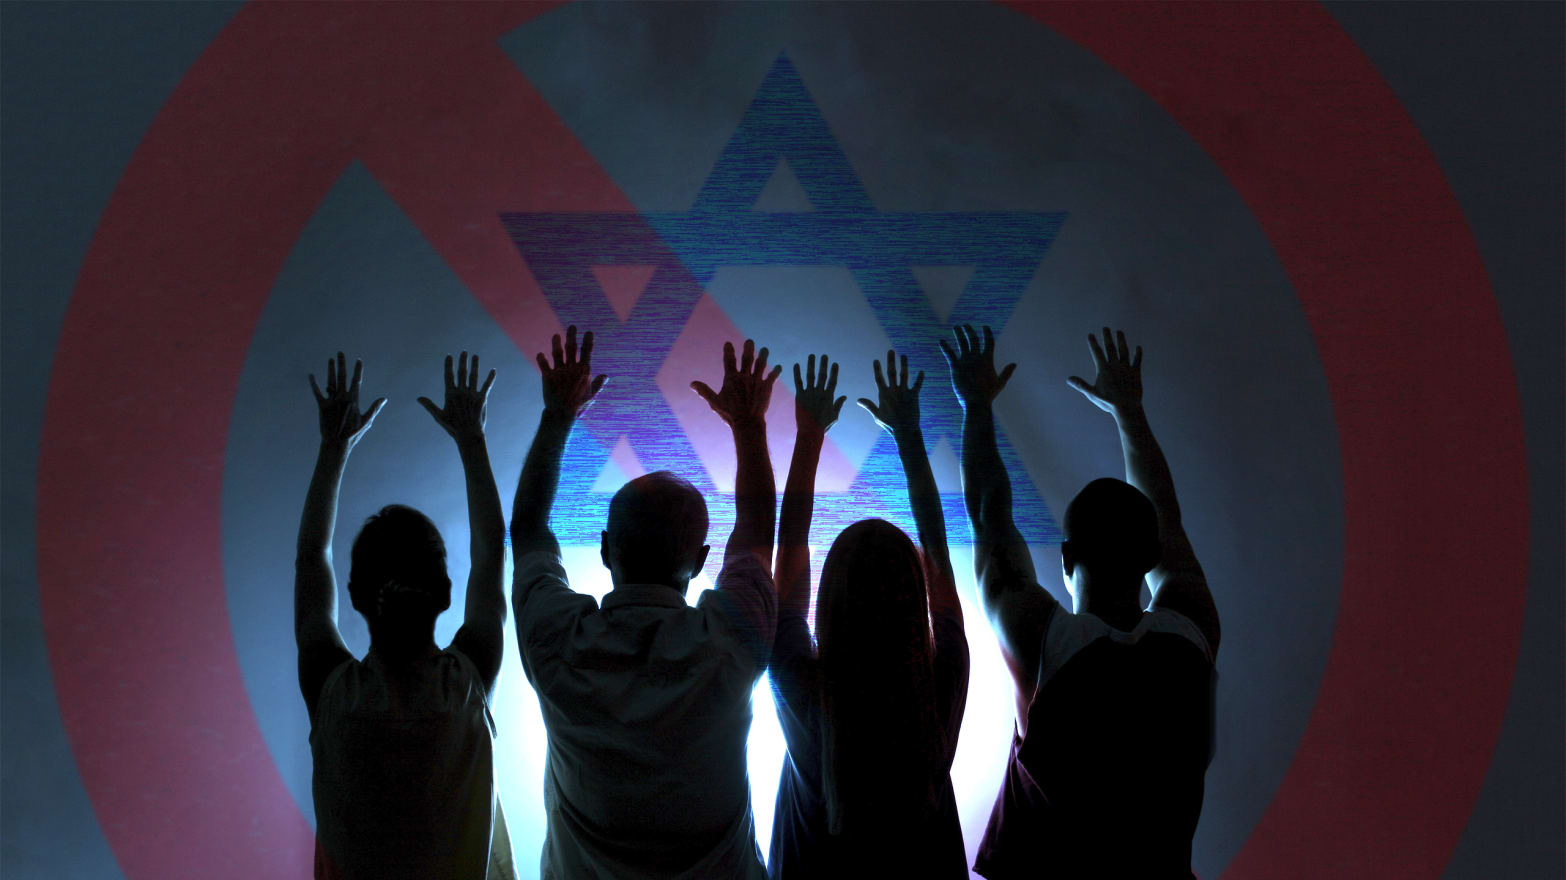 Israel's Cult Crackdown Could Snare Yoga, Rabbis, and Meditation